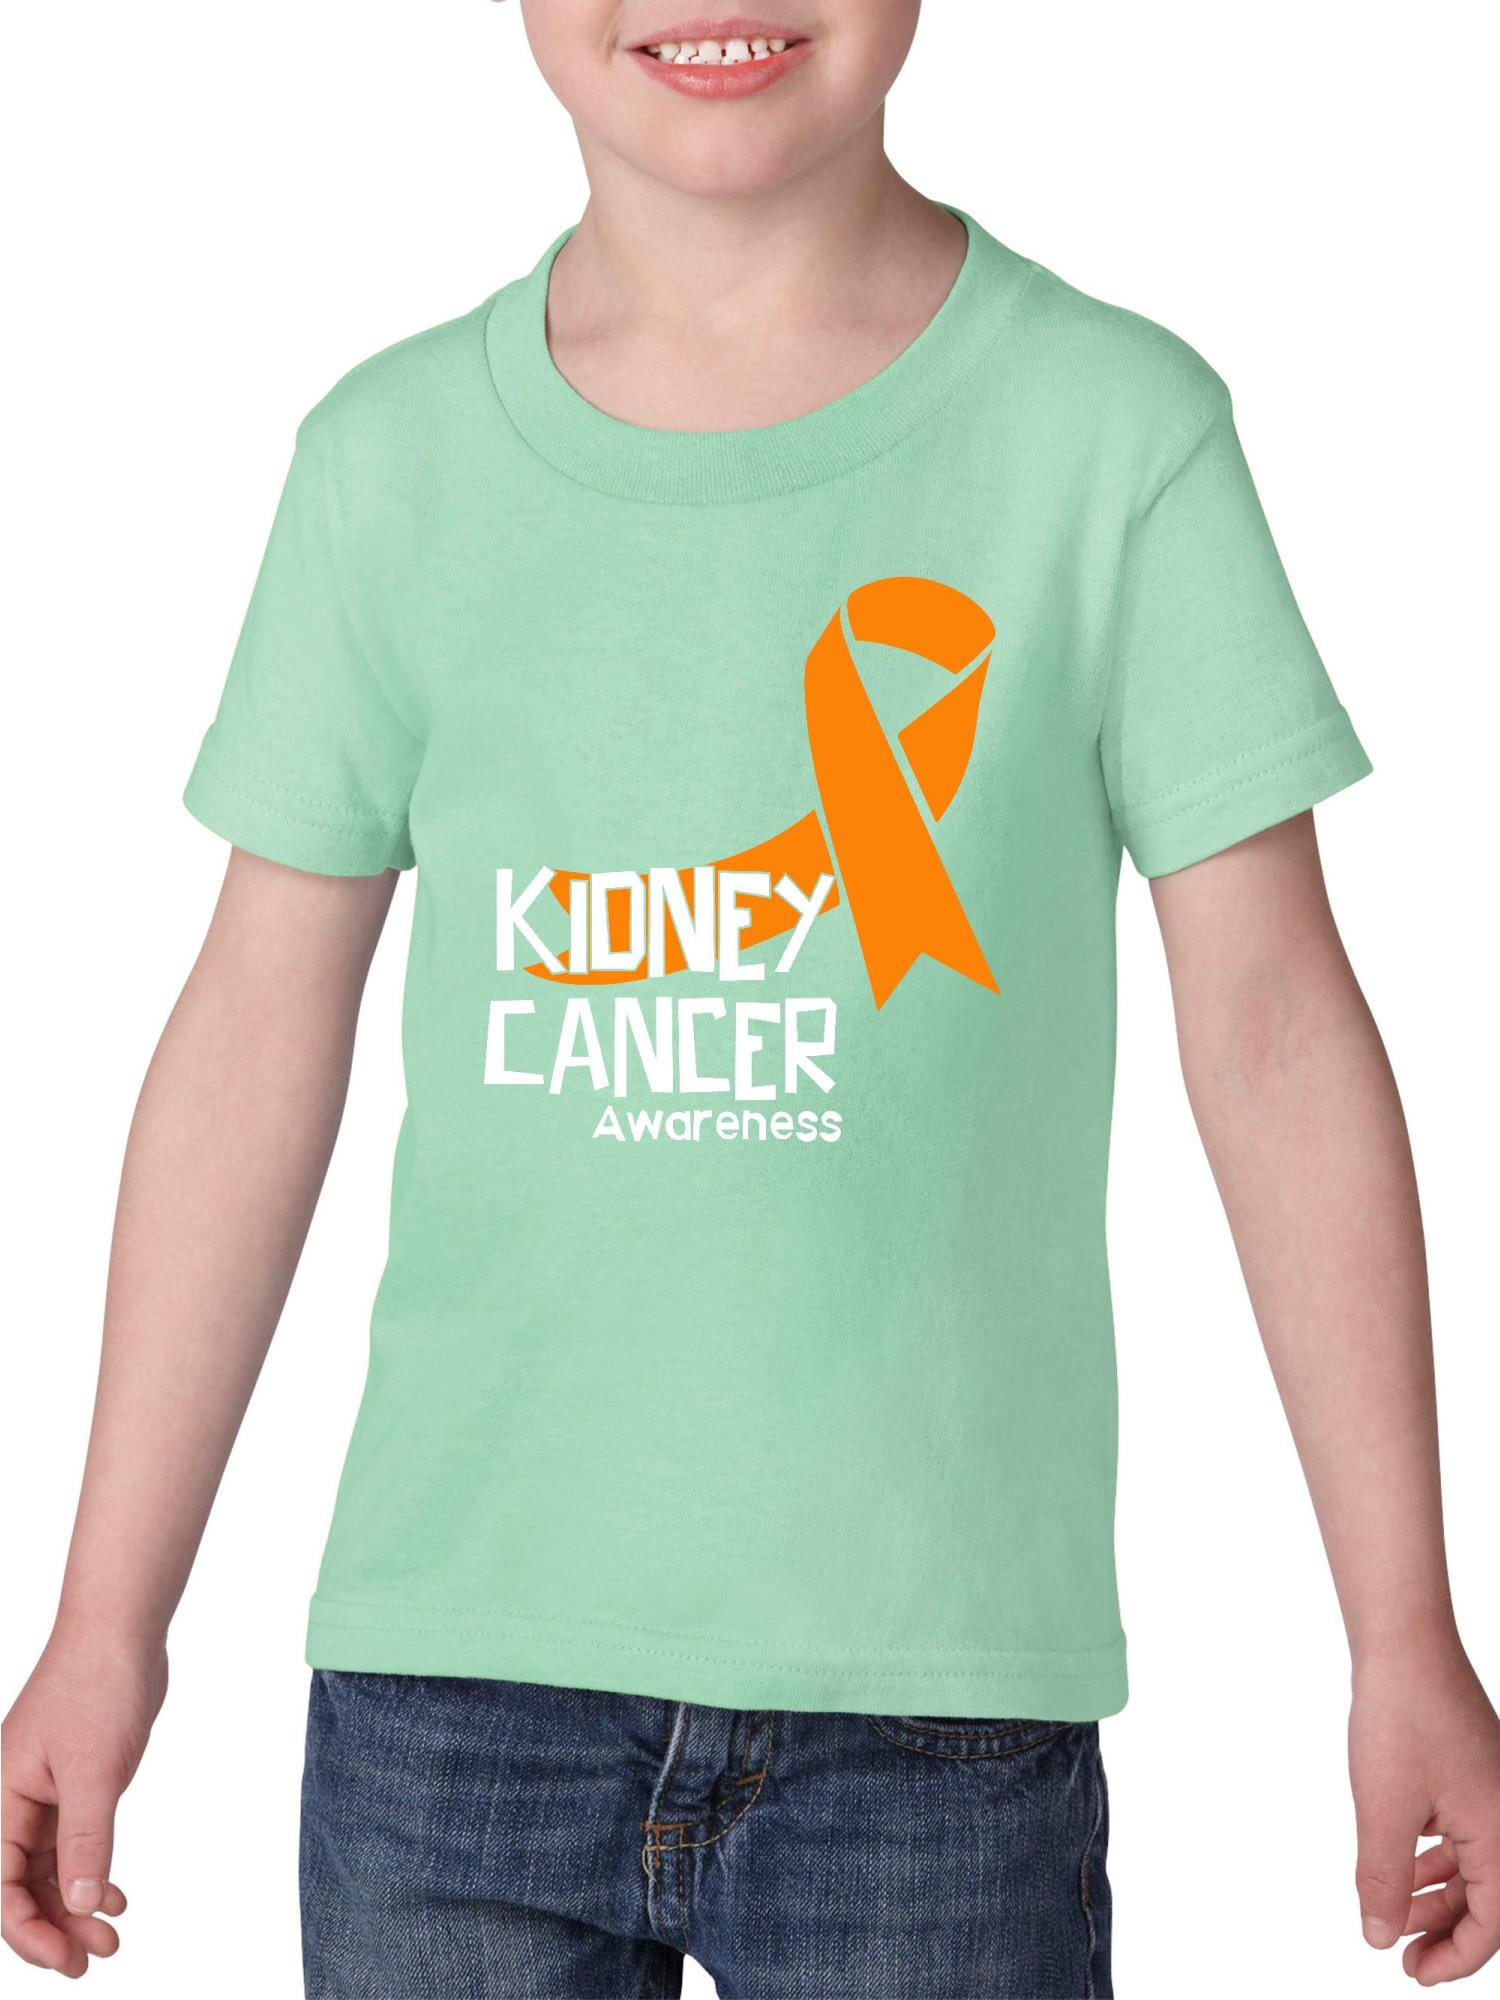 Kidney Cancer Awareness Heavy Cotton Toddler Kids T-Shirt Tee Clothing